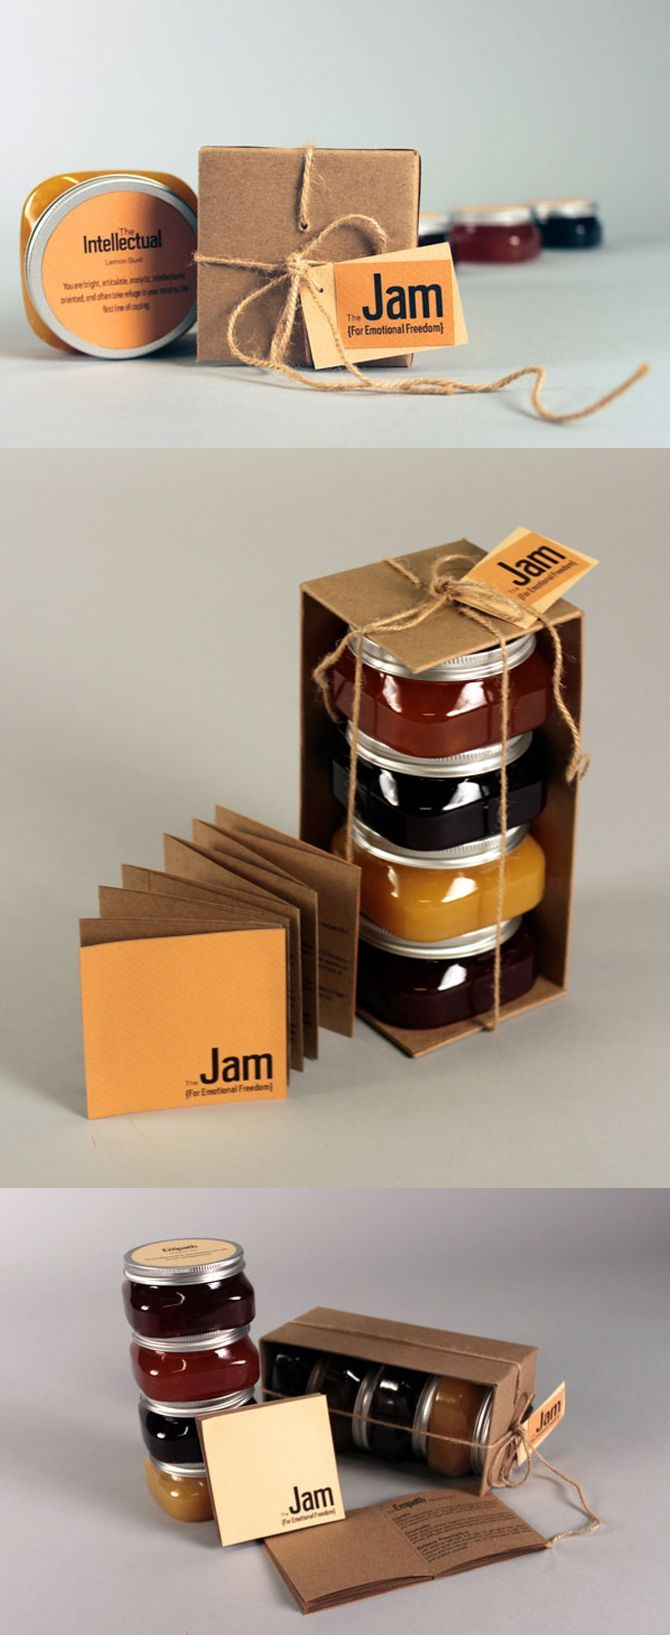 Jam Packaging Designs For Inspiration - We Design Packaging